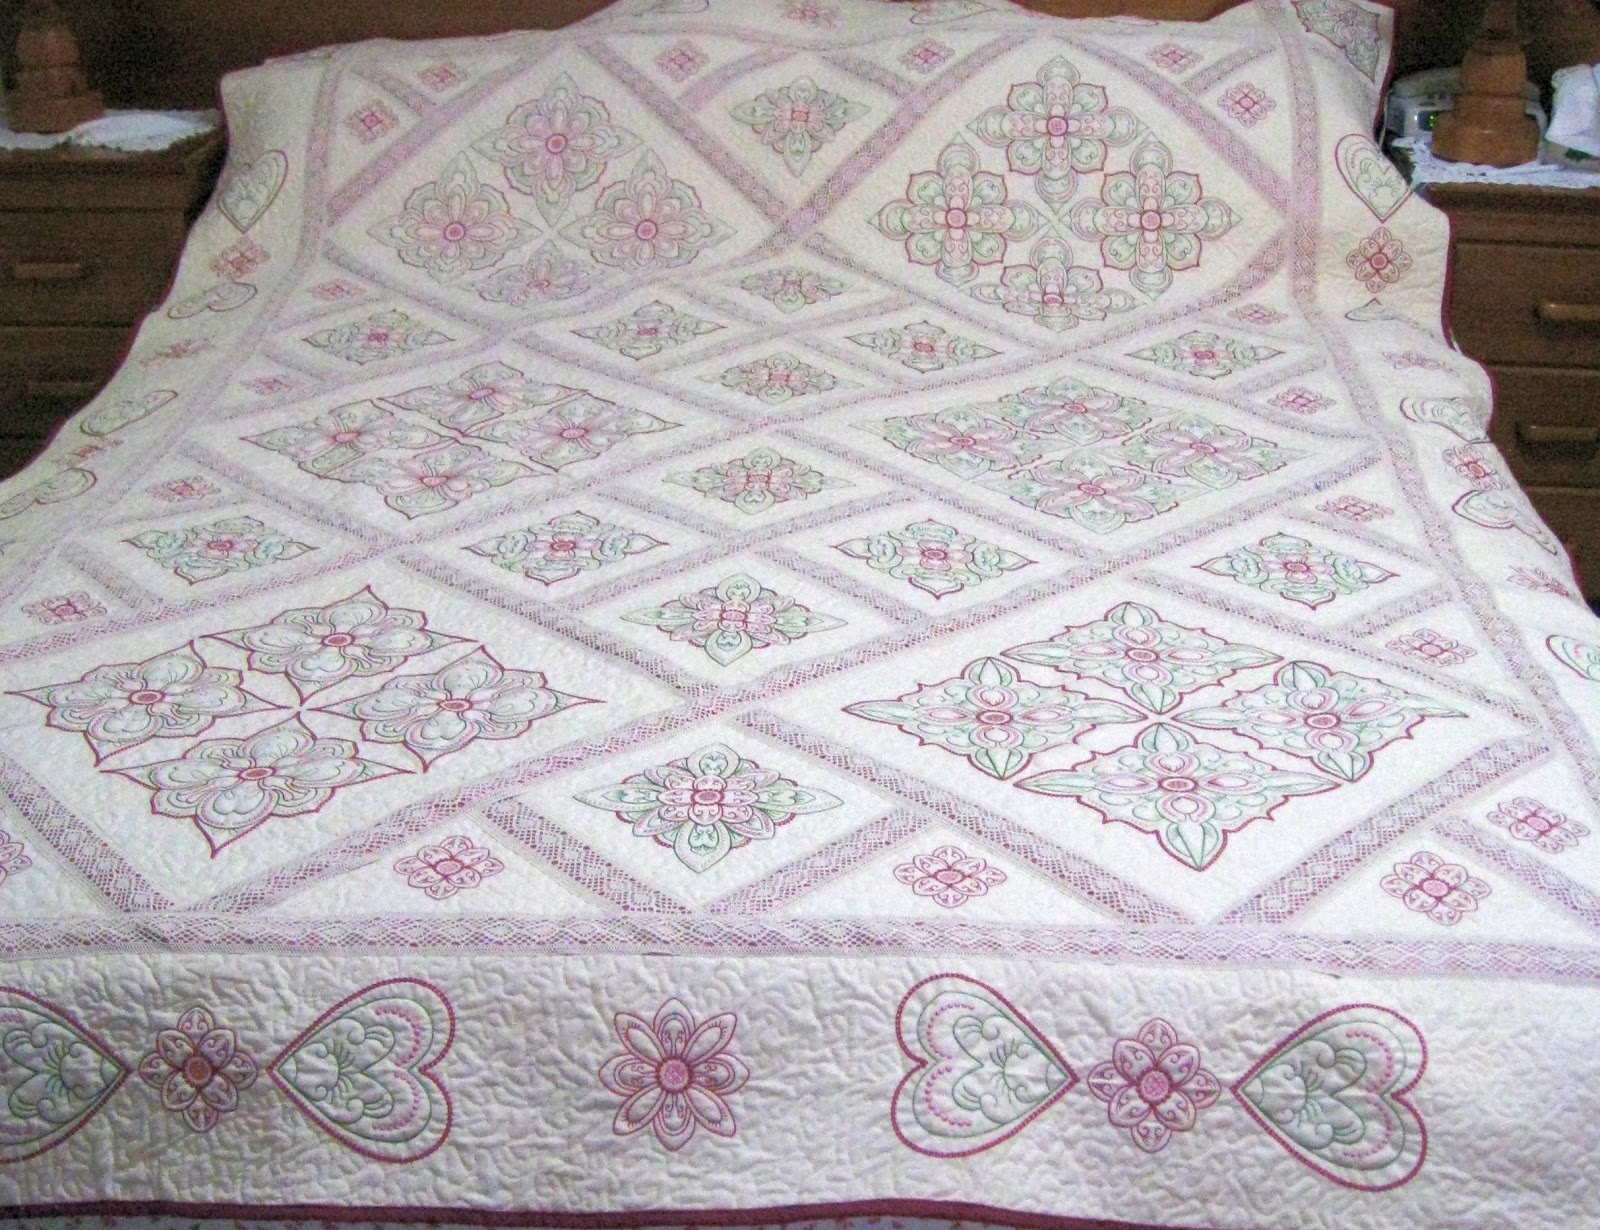 Vicki 39 s fabric creations candlewick quilt finished for Bed quilting designs